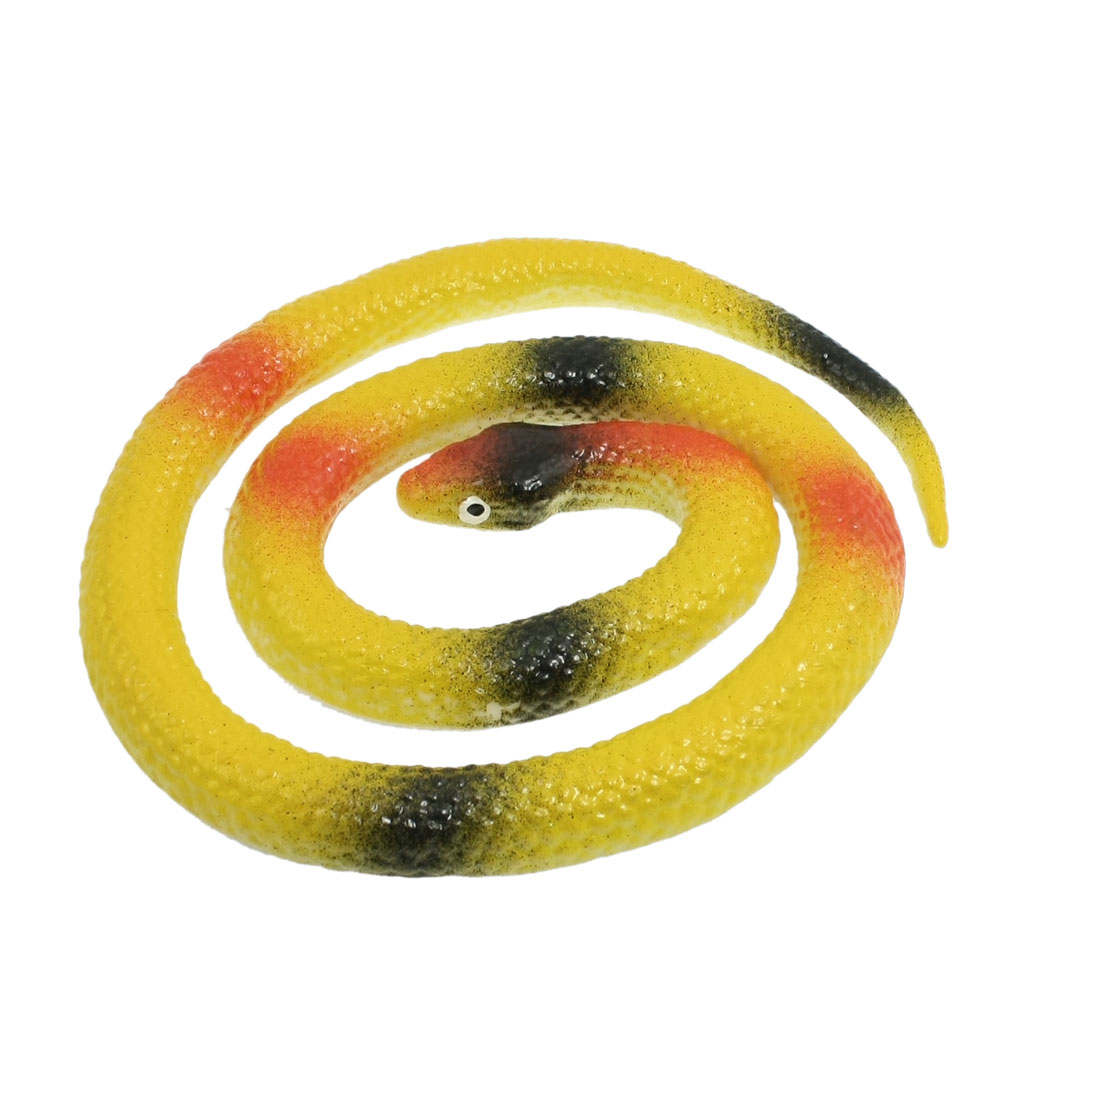 "25.7"" Length Yellow Silicone Artificial Snake Fun Joke Trick Toy"